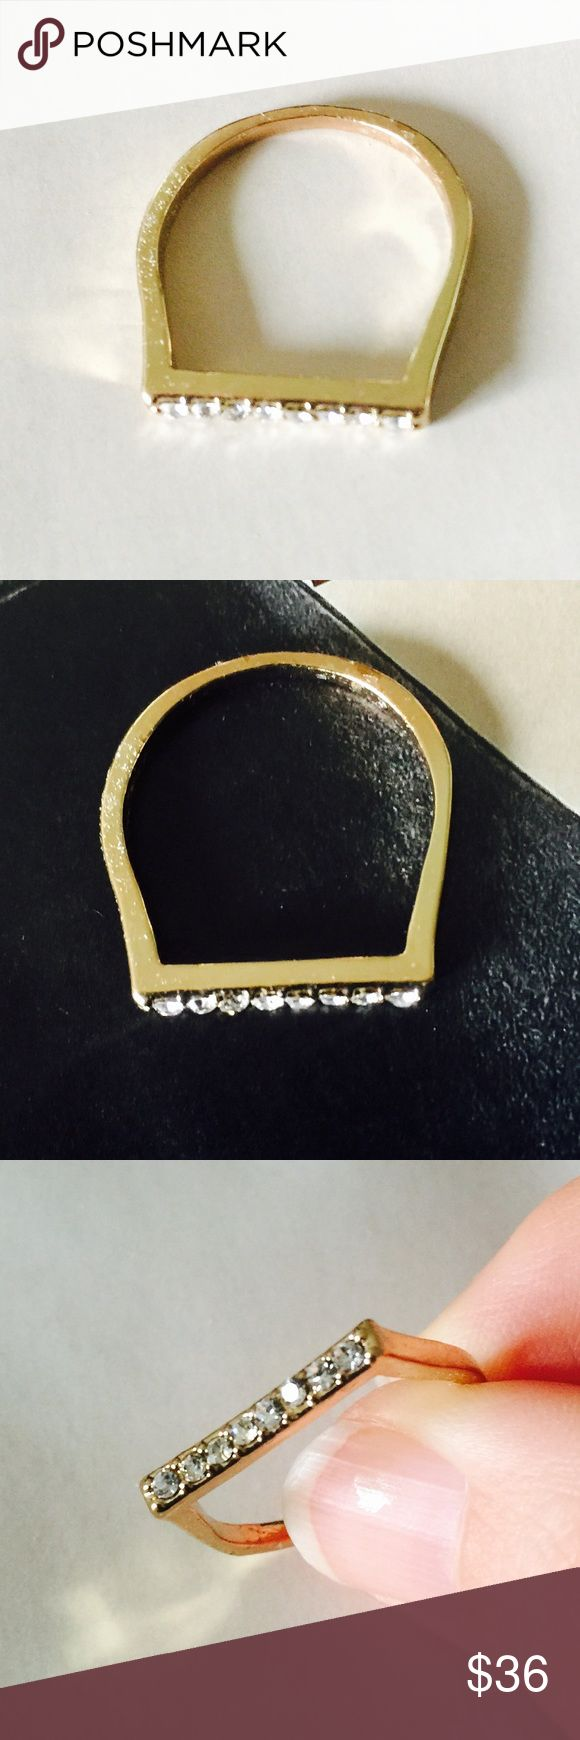 ❗️1 LEFT Anthropologie Studded Ring Sz 7 ❗️1 LEFT Anthropologie Studded Ring. Sz 7. Costume jewelry. Make an offer! I consider all reasonable offers on individual items & give great bundle deals. New Year cleanout sale ;-) Anthropologie Jewelry Rings